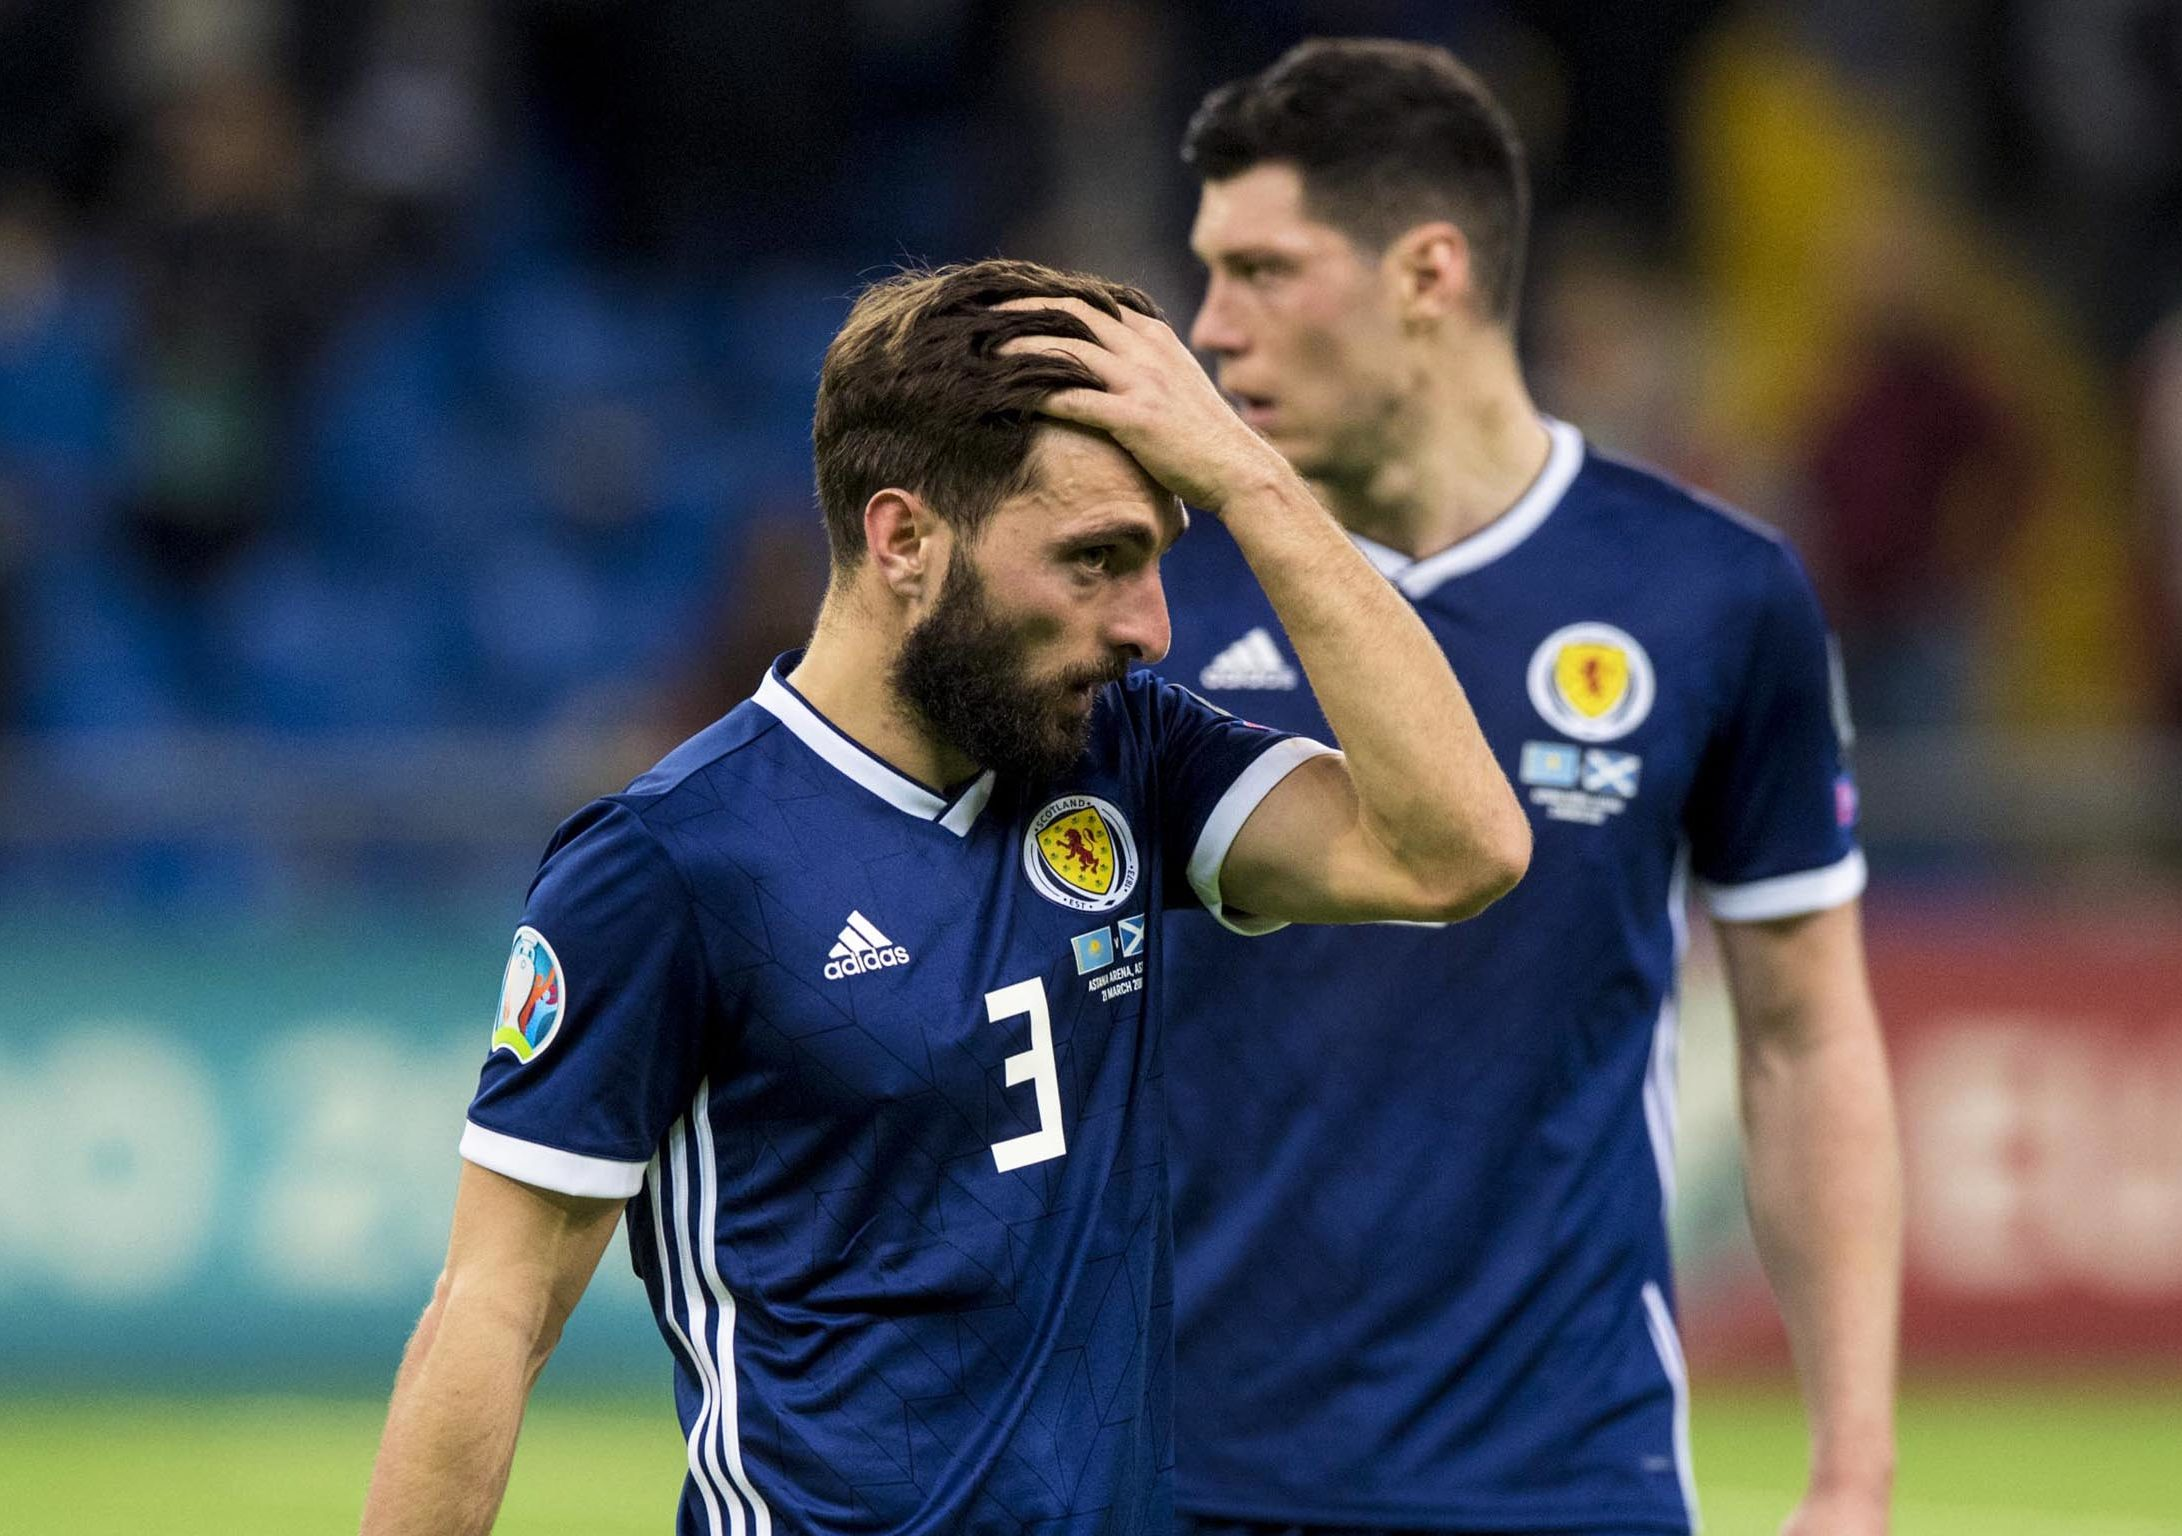 Scotland's Graeme Shinnie show's his frustration at full-time.